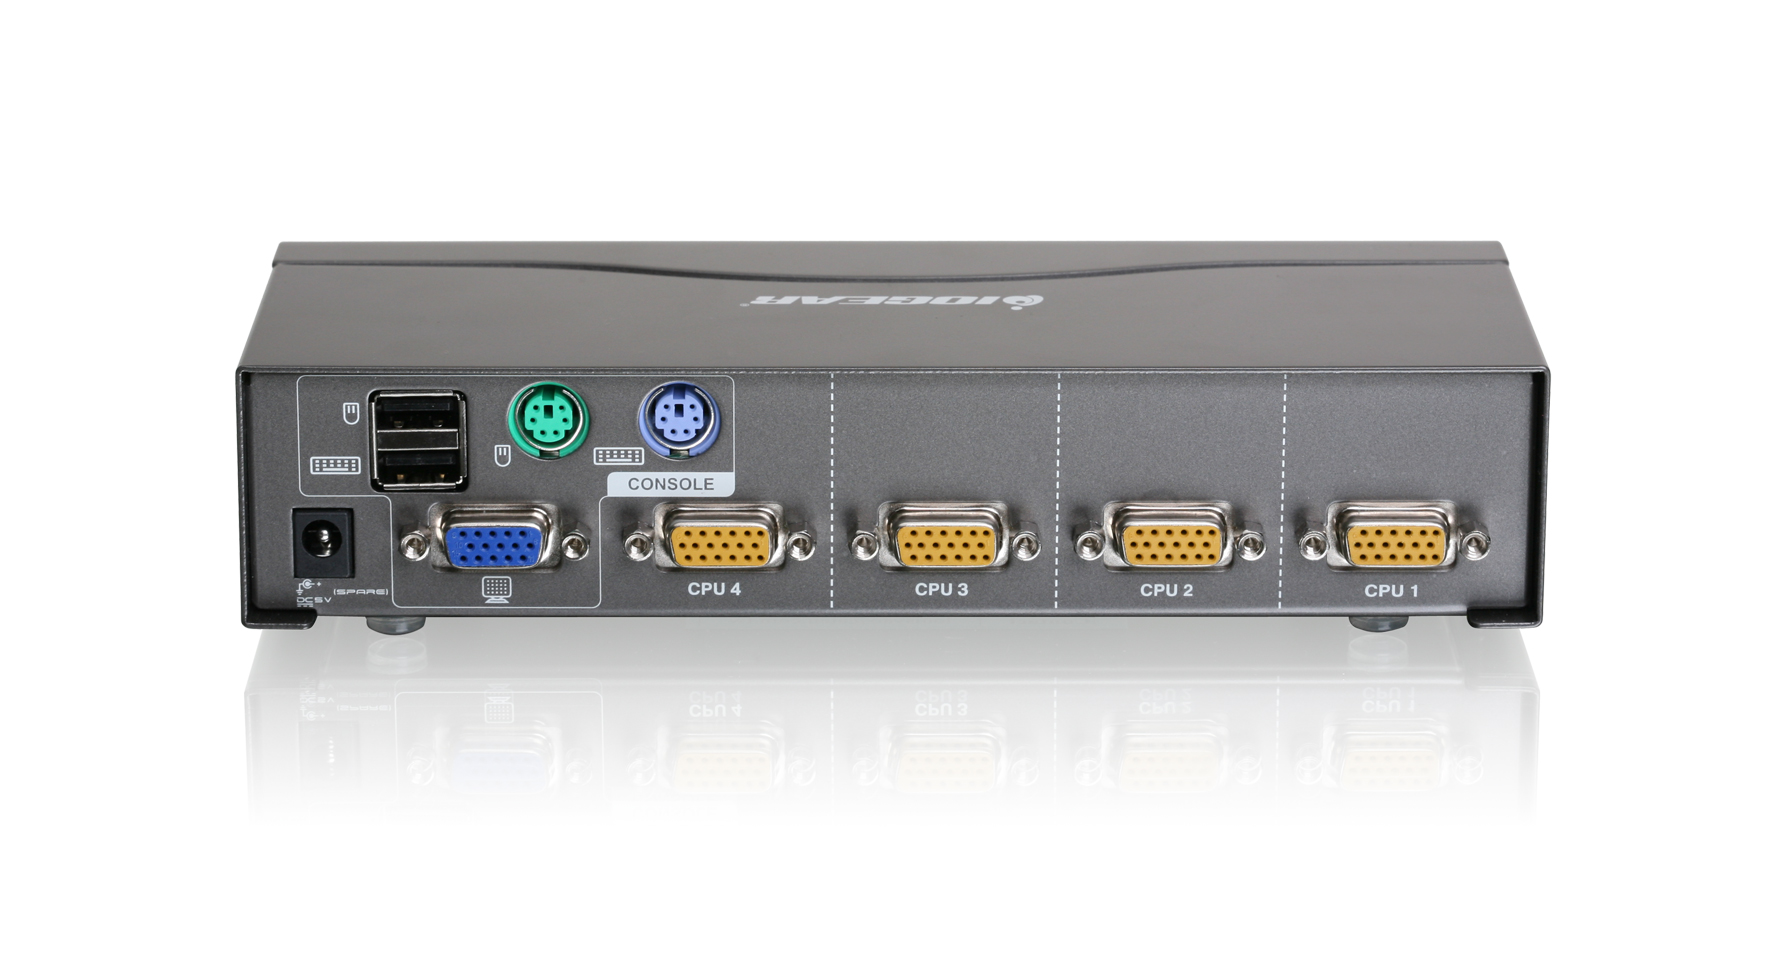 Iogear Gcs1724 4 Port Vga Kvm Switch Ps2 And Usb To Schematic